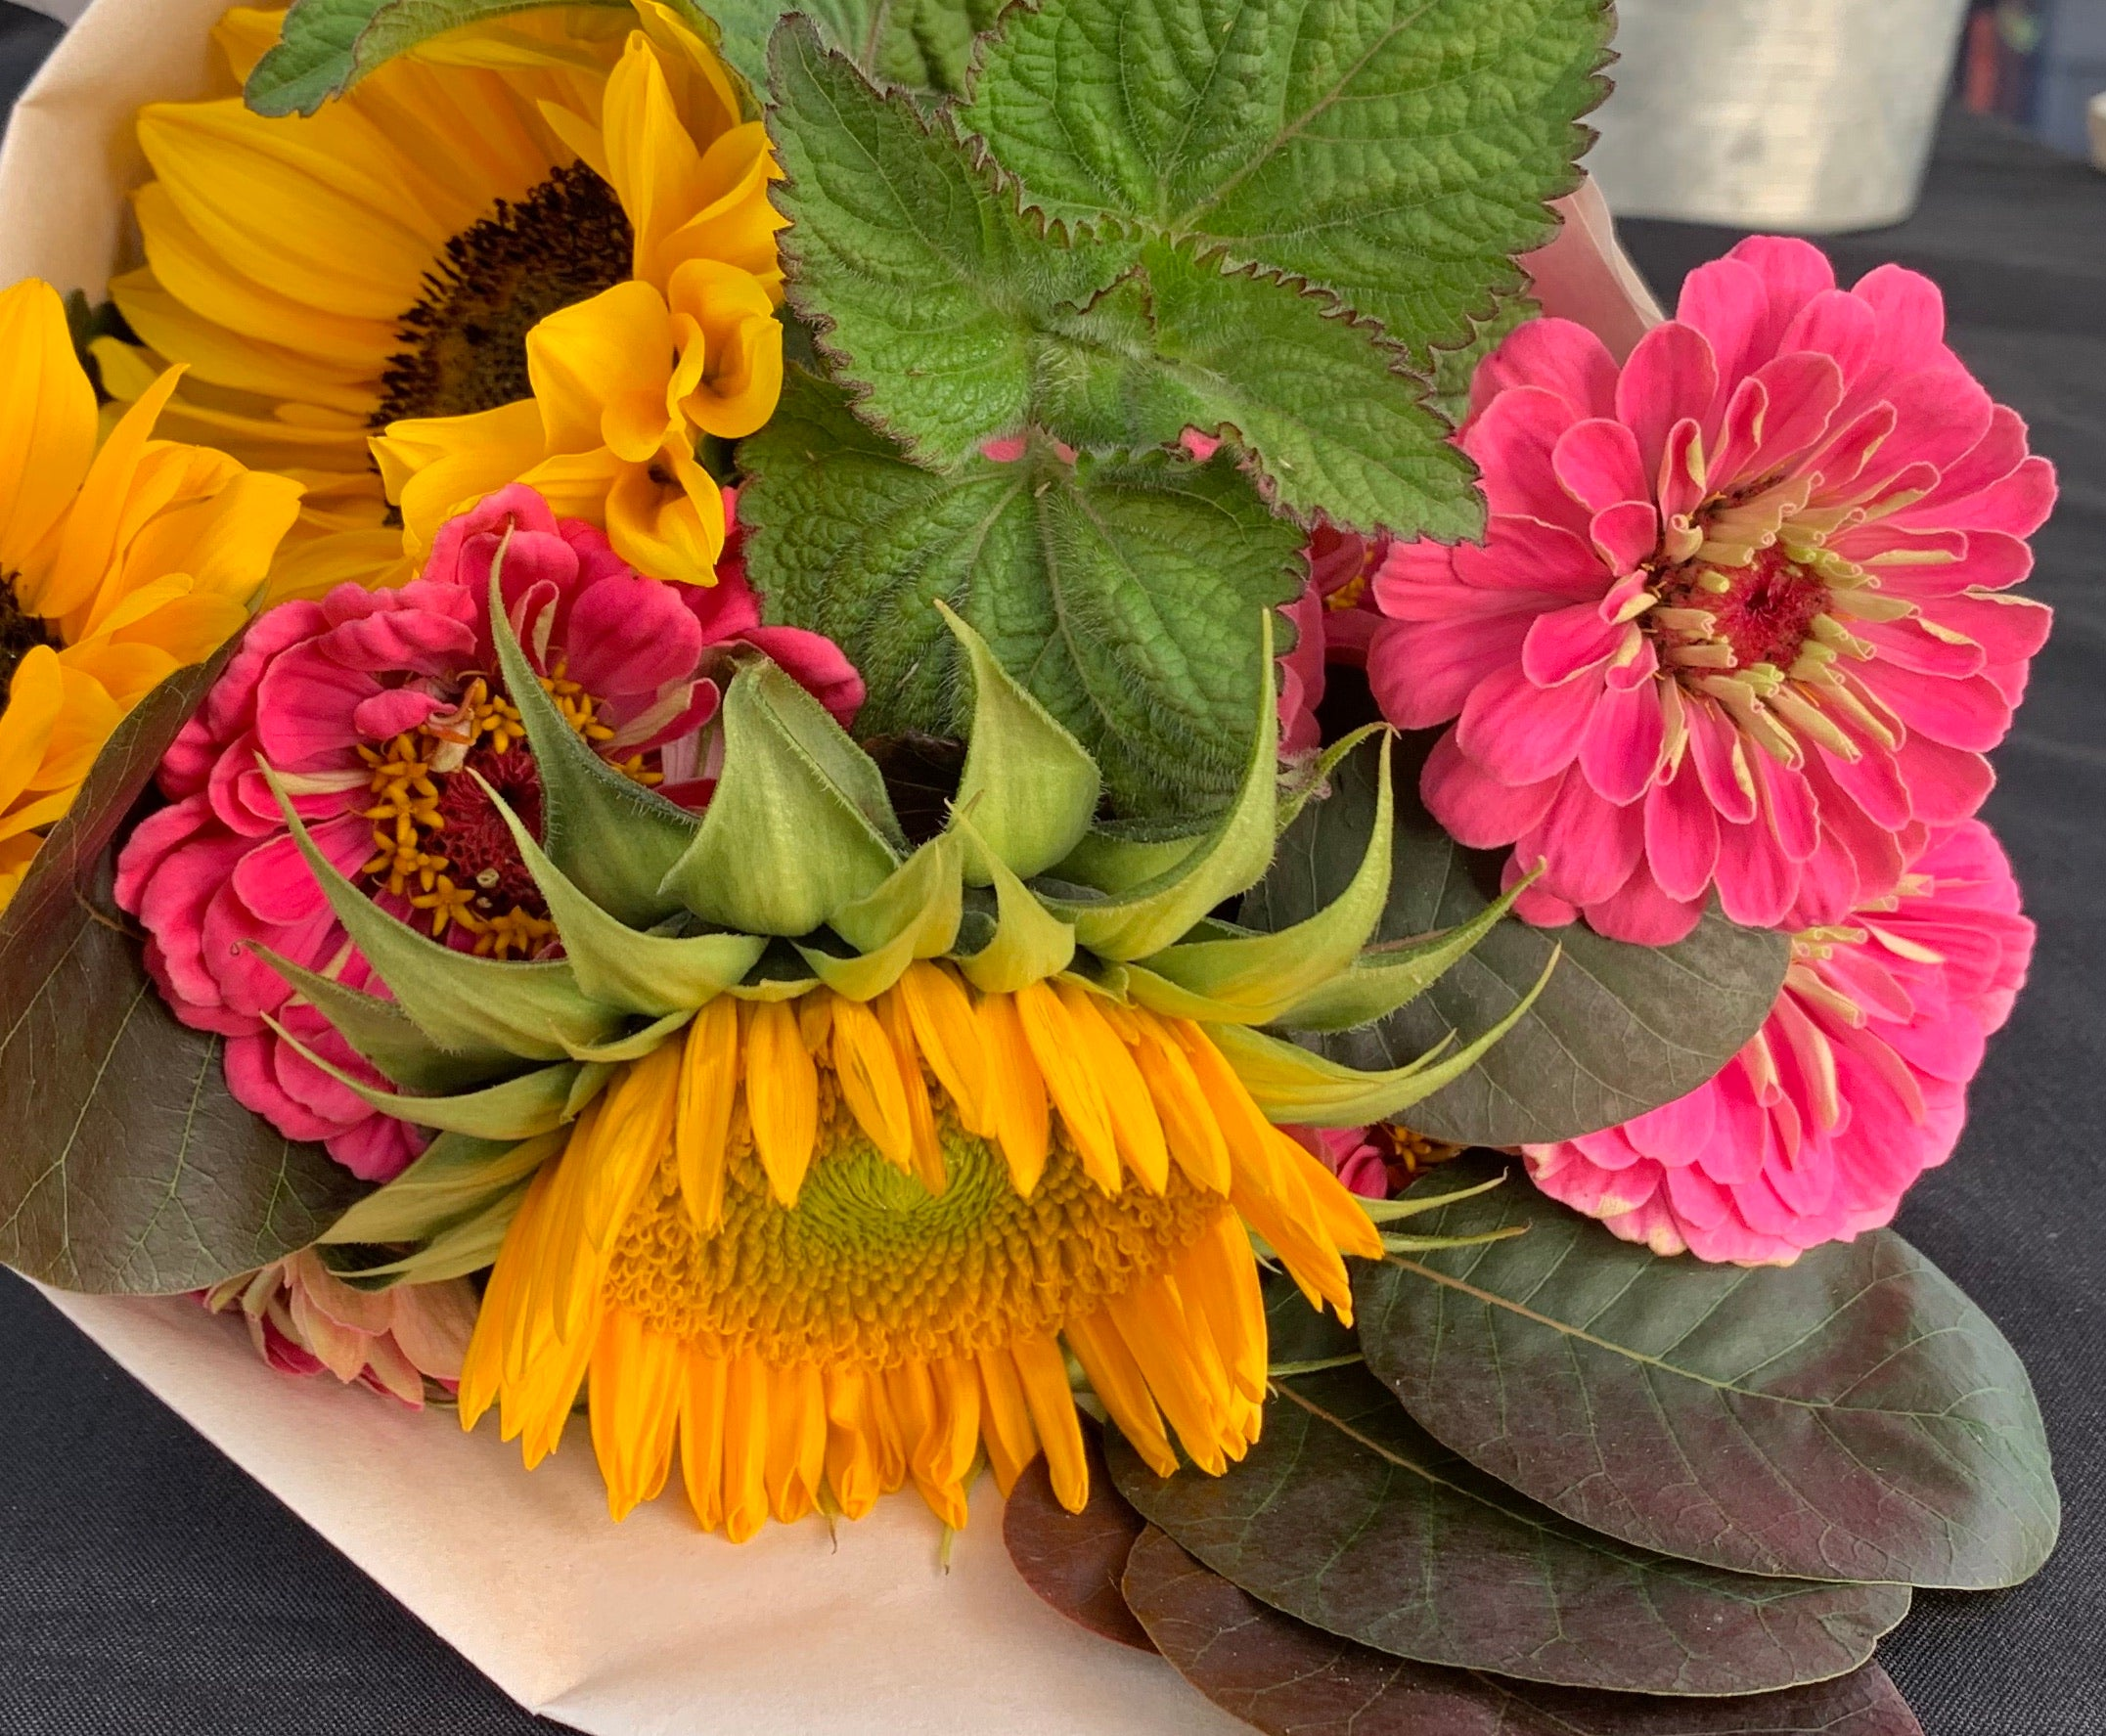 Subscription for Locally Grown Flower Bouquets  - 2020 Season